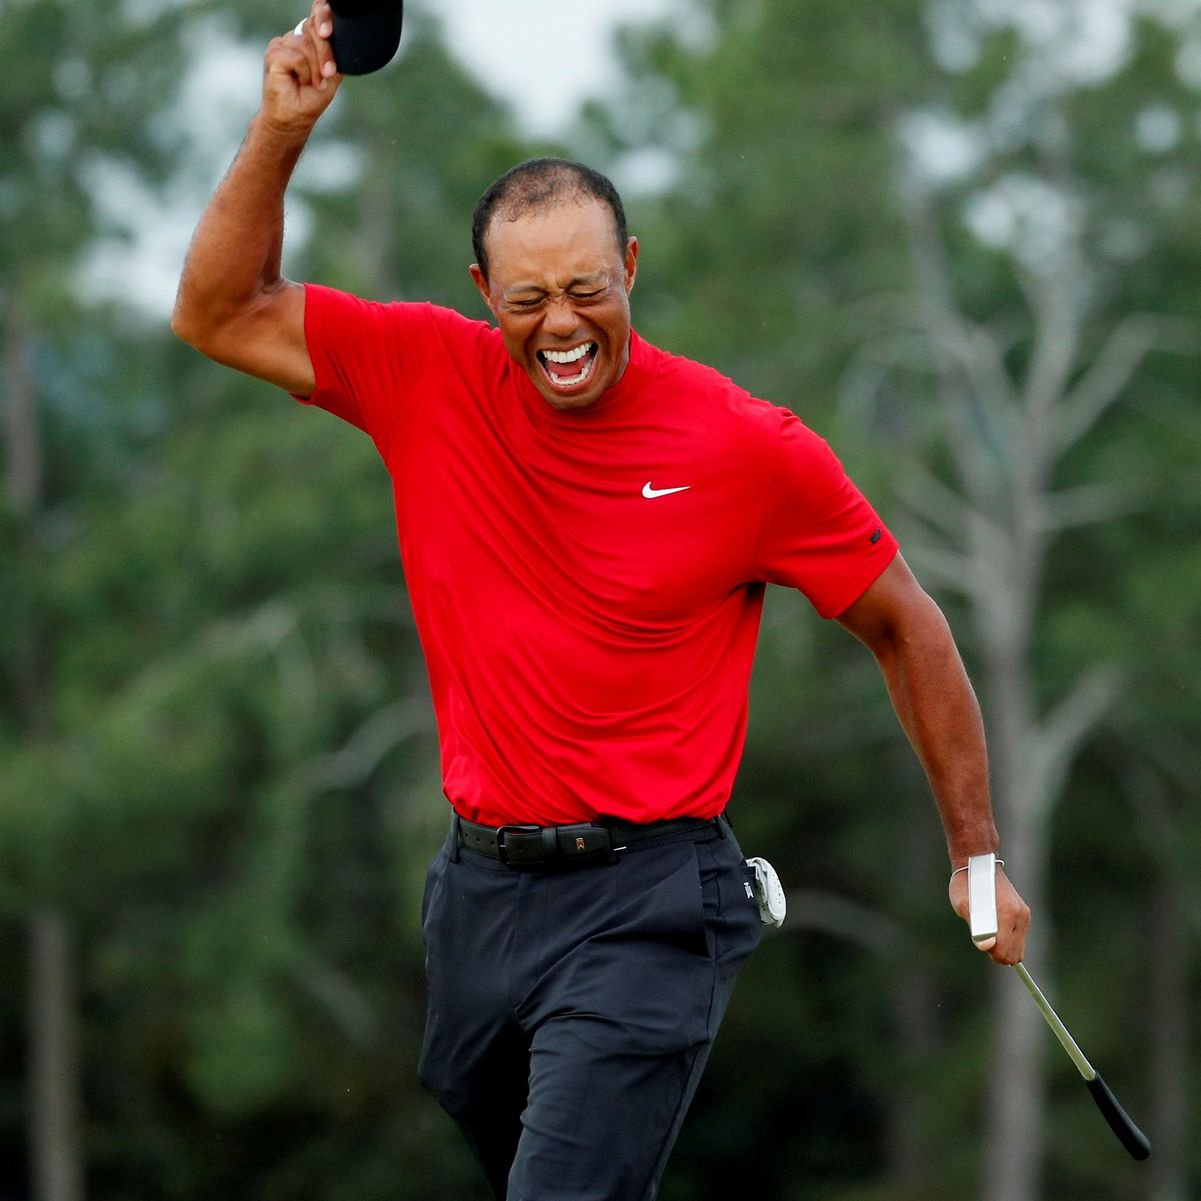 Tiger Woods crash: Golf star gives update on playing future